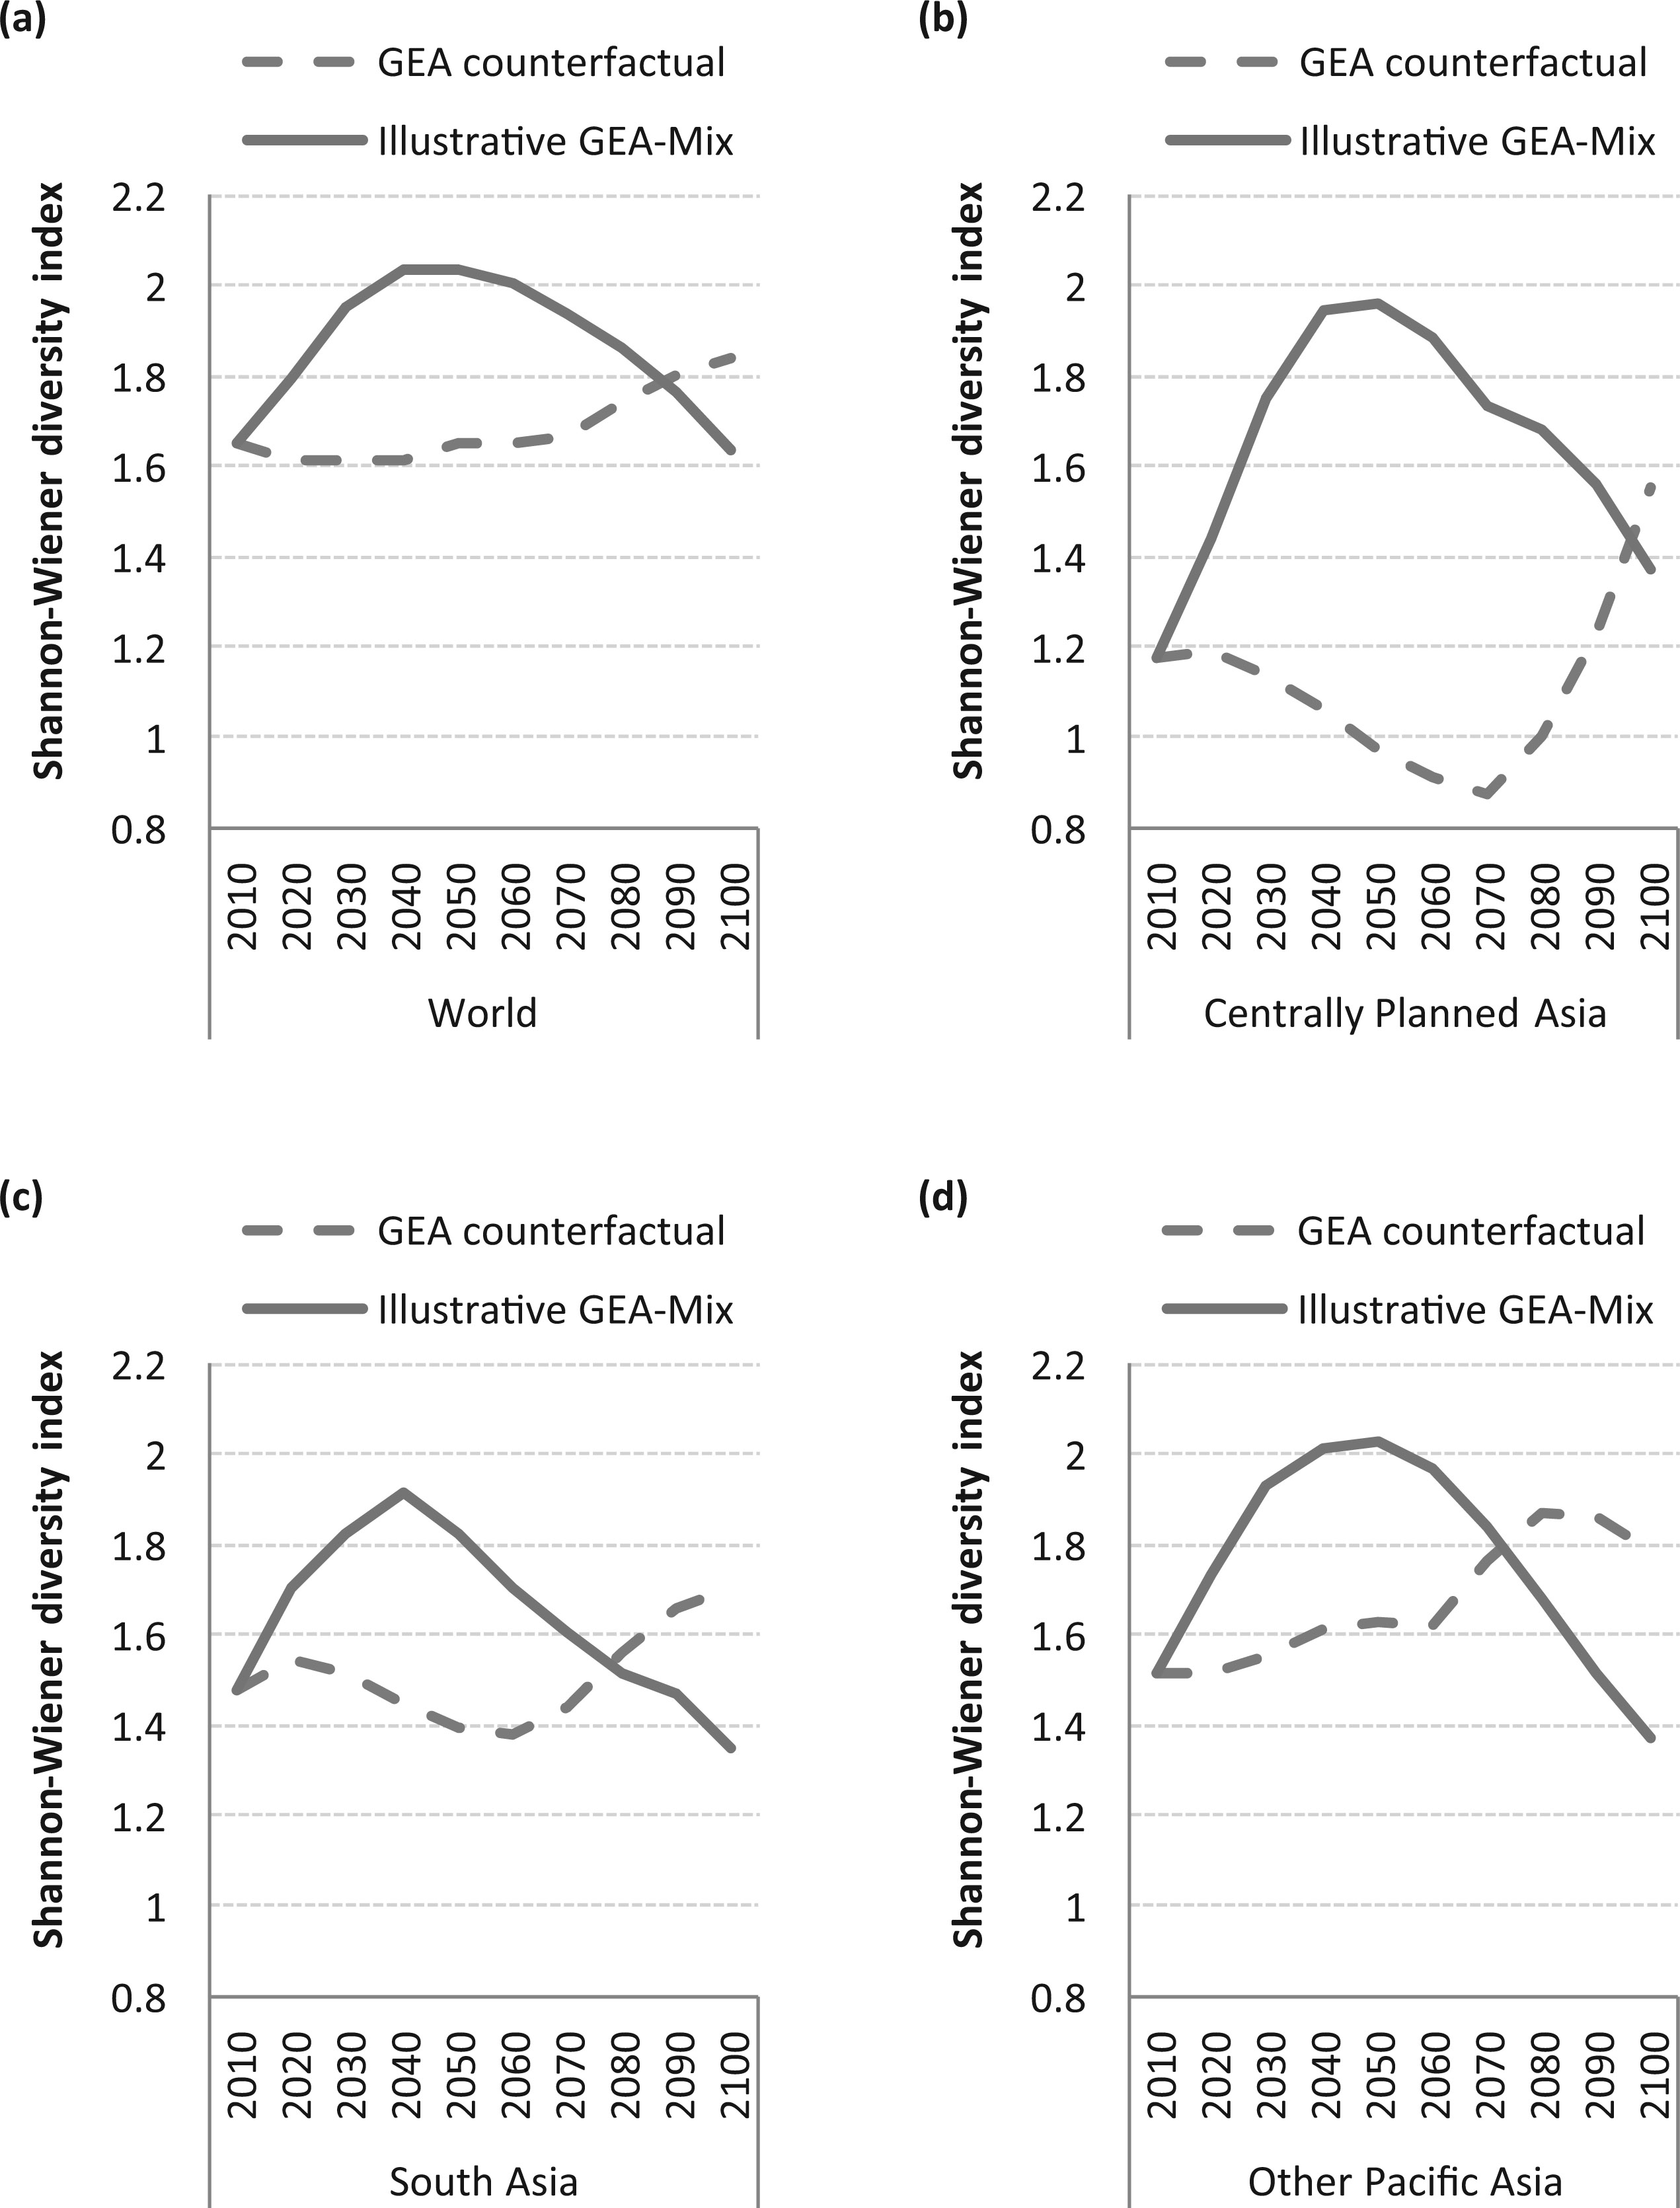 The Shannon-Wiener diversity index in the world (a) Centrally Planned Asia (b) South Asia (c) and Other Pacific Asia (d) in the GEA counterfactual and illustrative GEA-Mix pathways